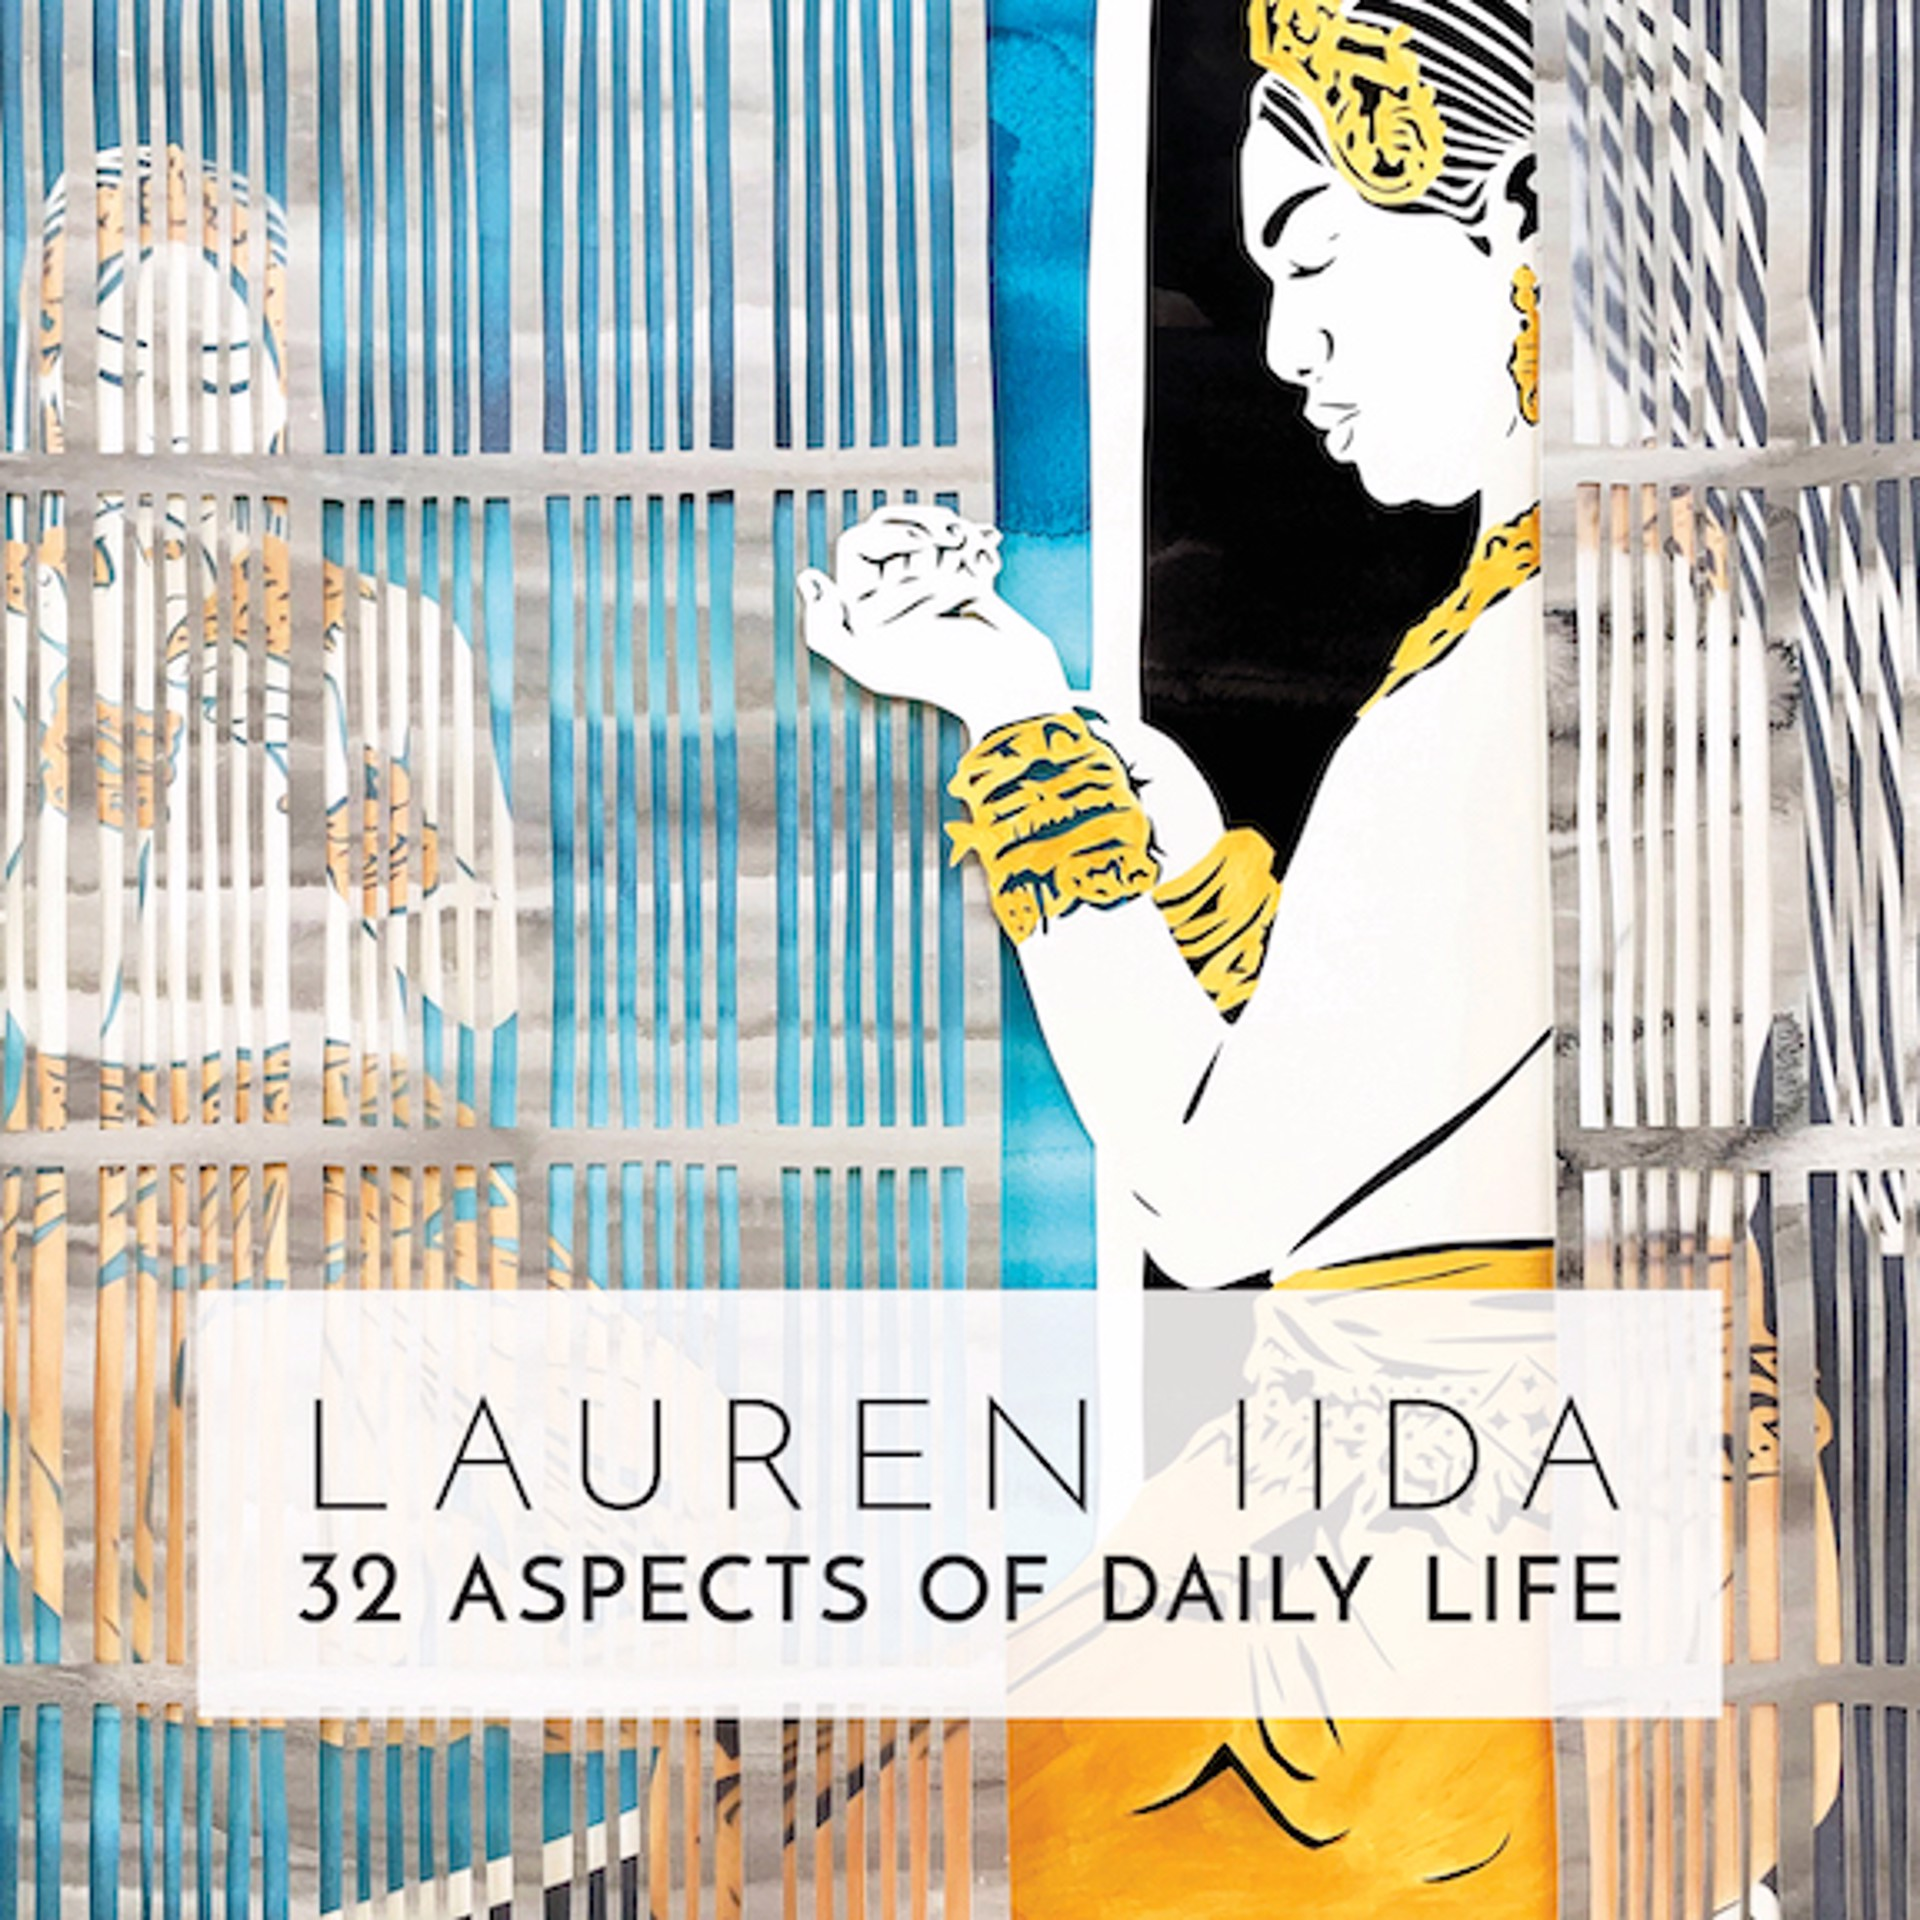 32 Aspects of Daily Life Exhibition Catalog by Lauren Iida